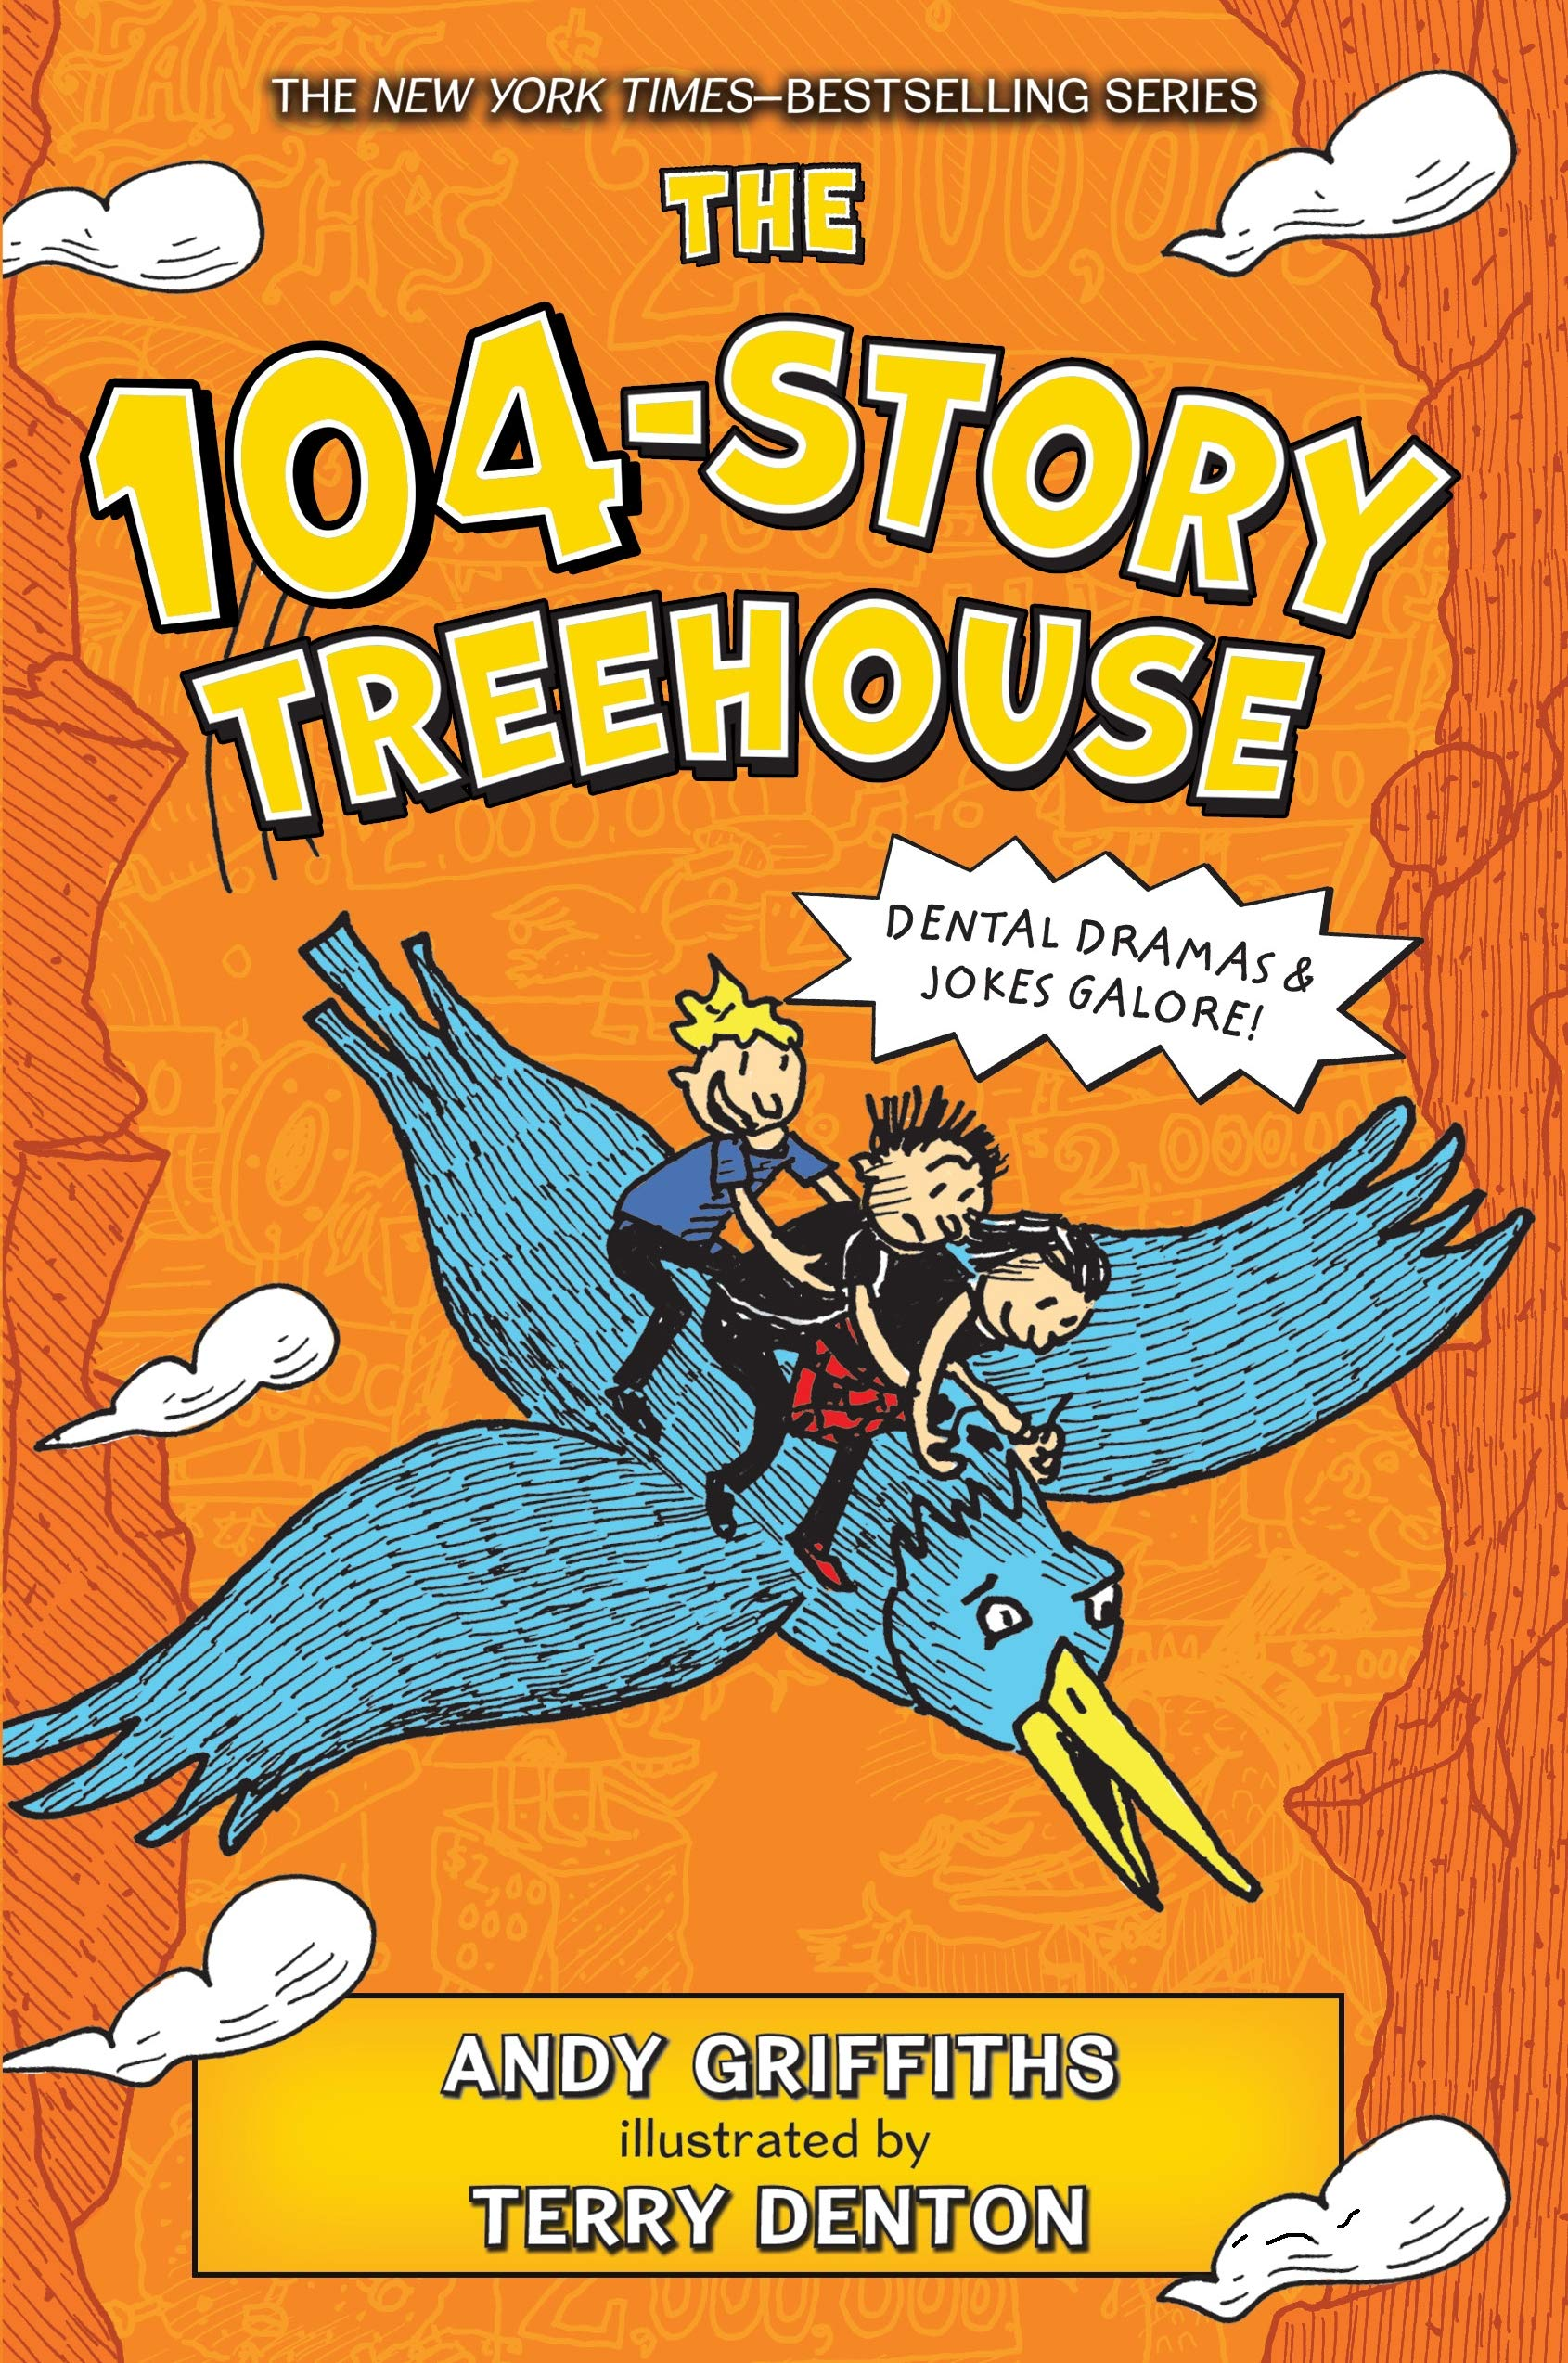 The 104-Story Treehouse: Dental Dramas & Jokes Galore! (The Treehouse Books)